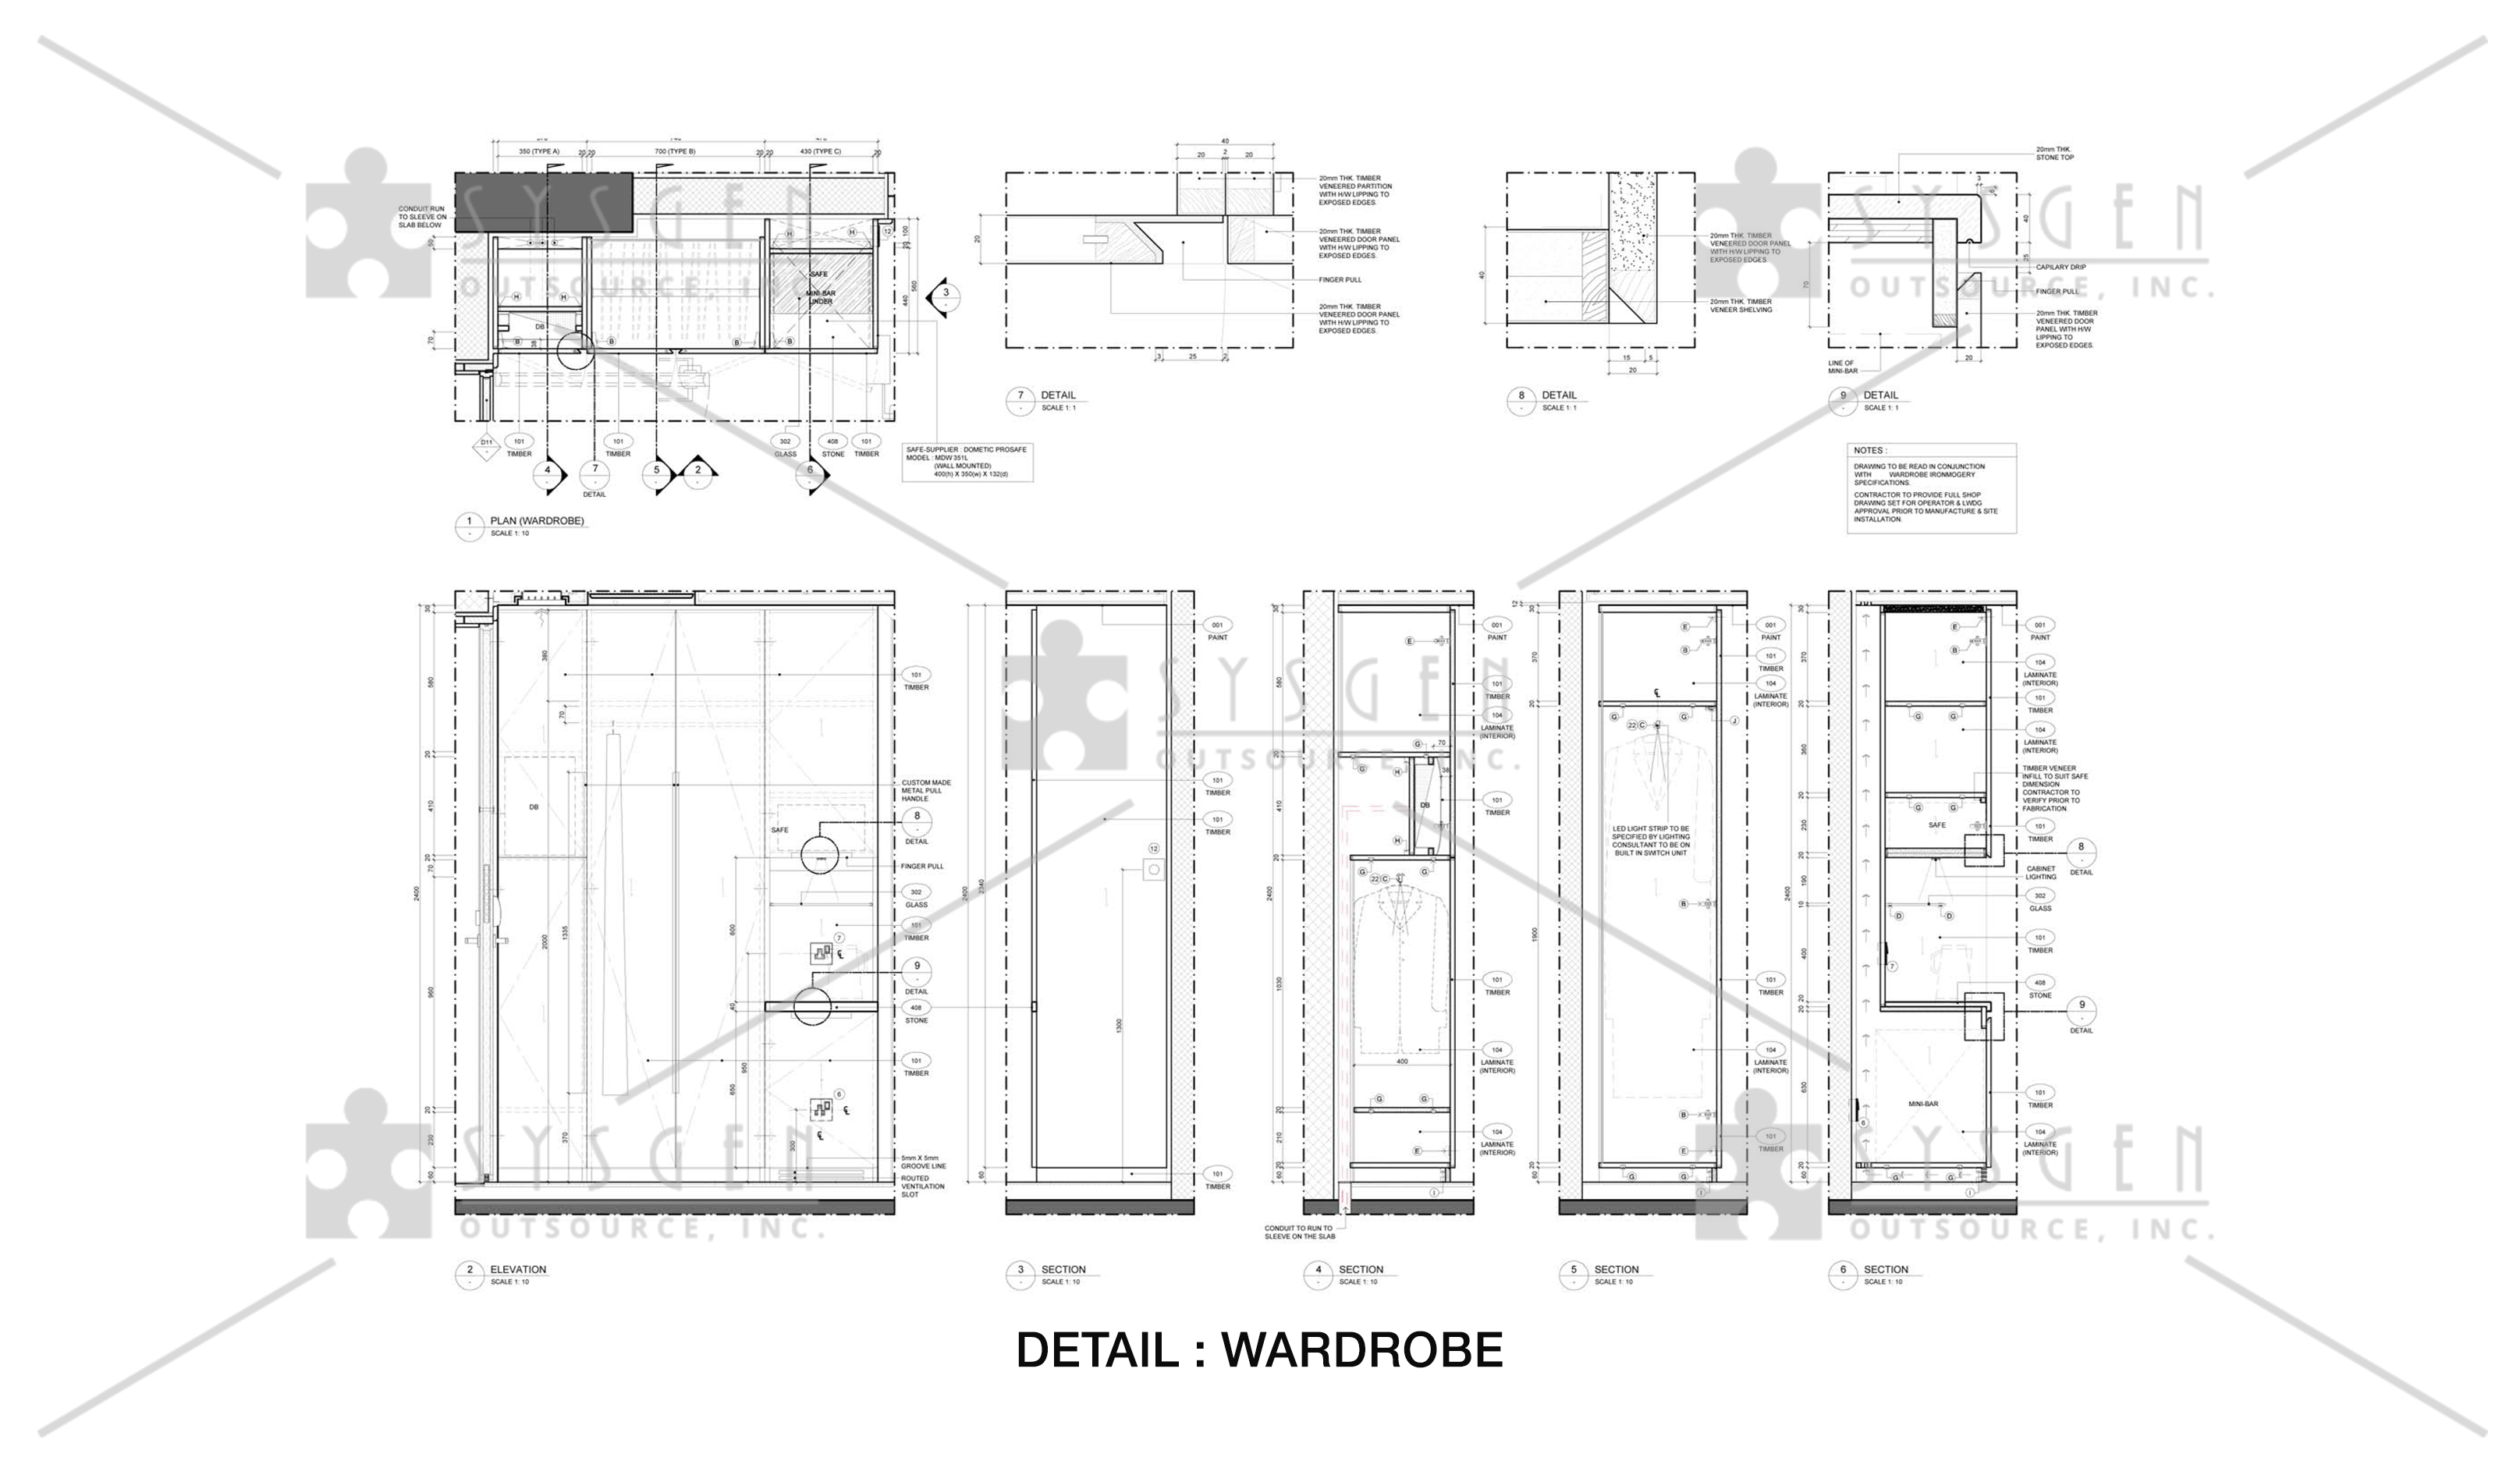 sysgen-outsource-cad-outsourcing-services-interior-design-hotel5